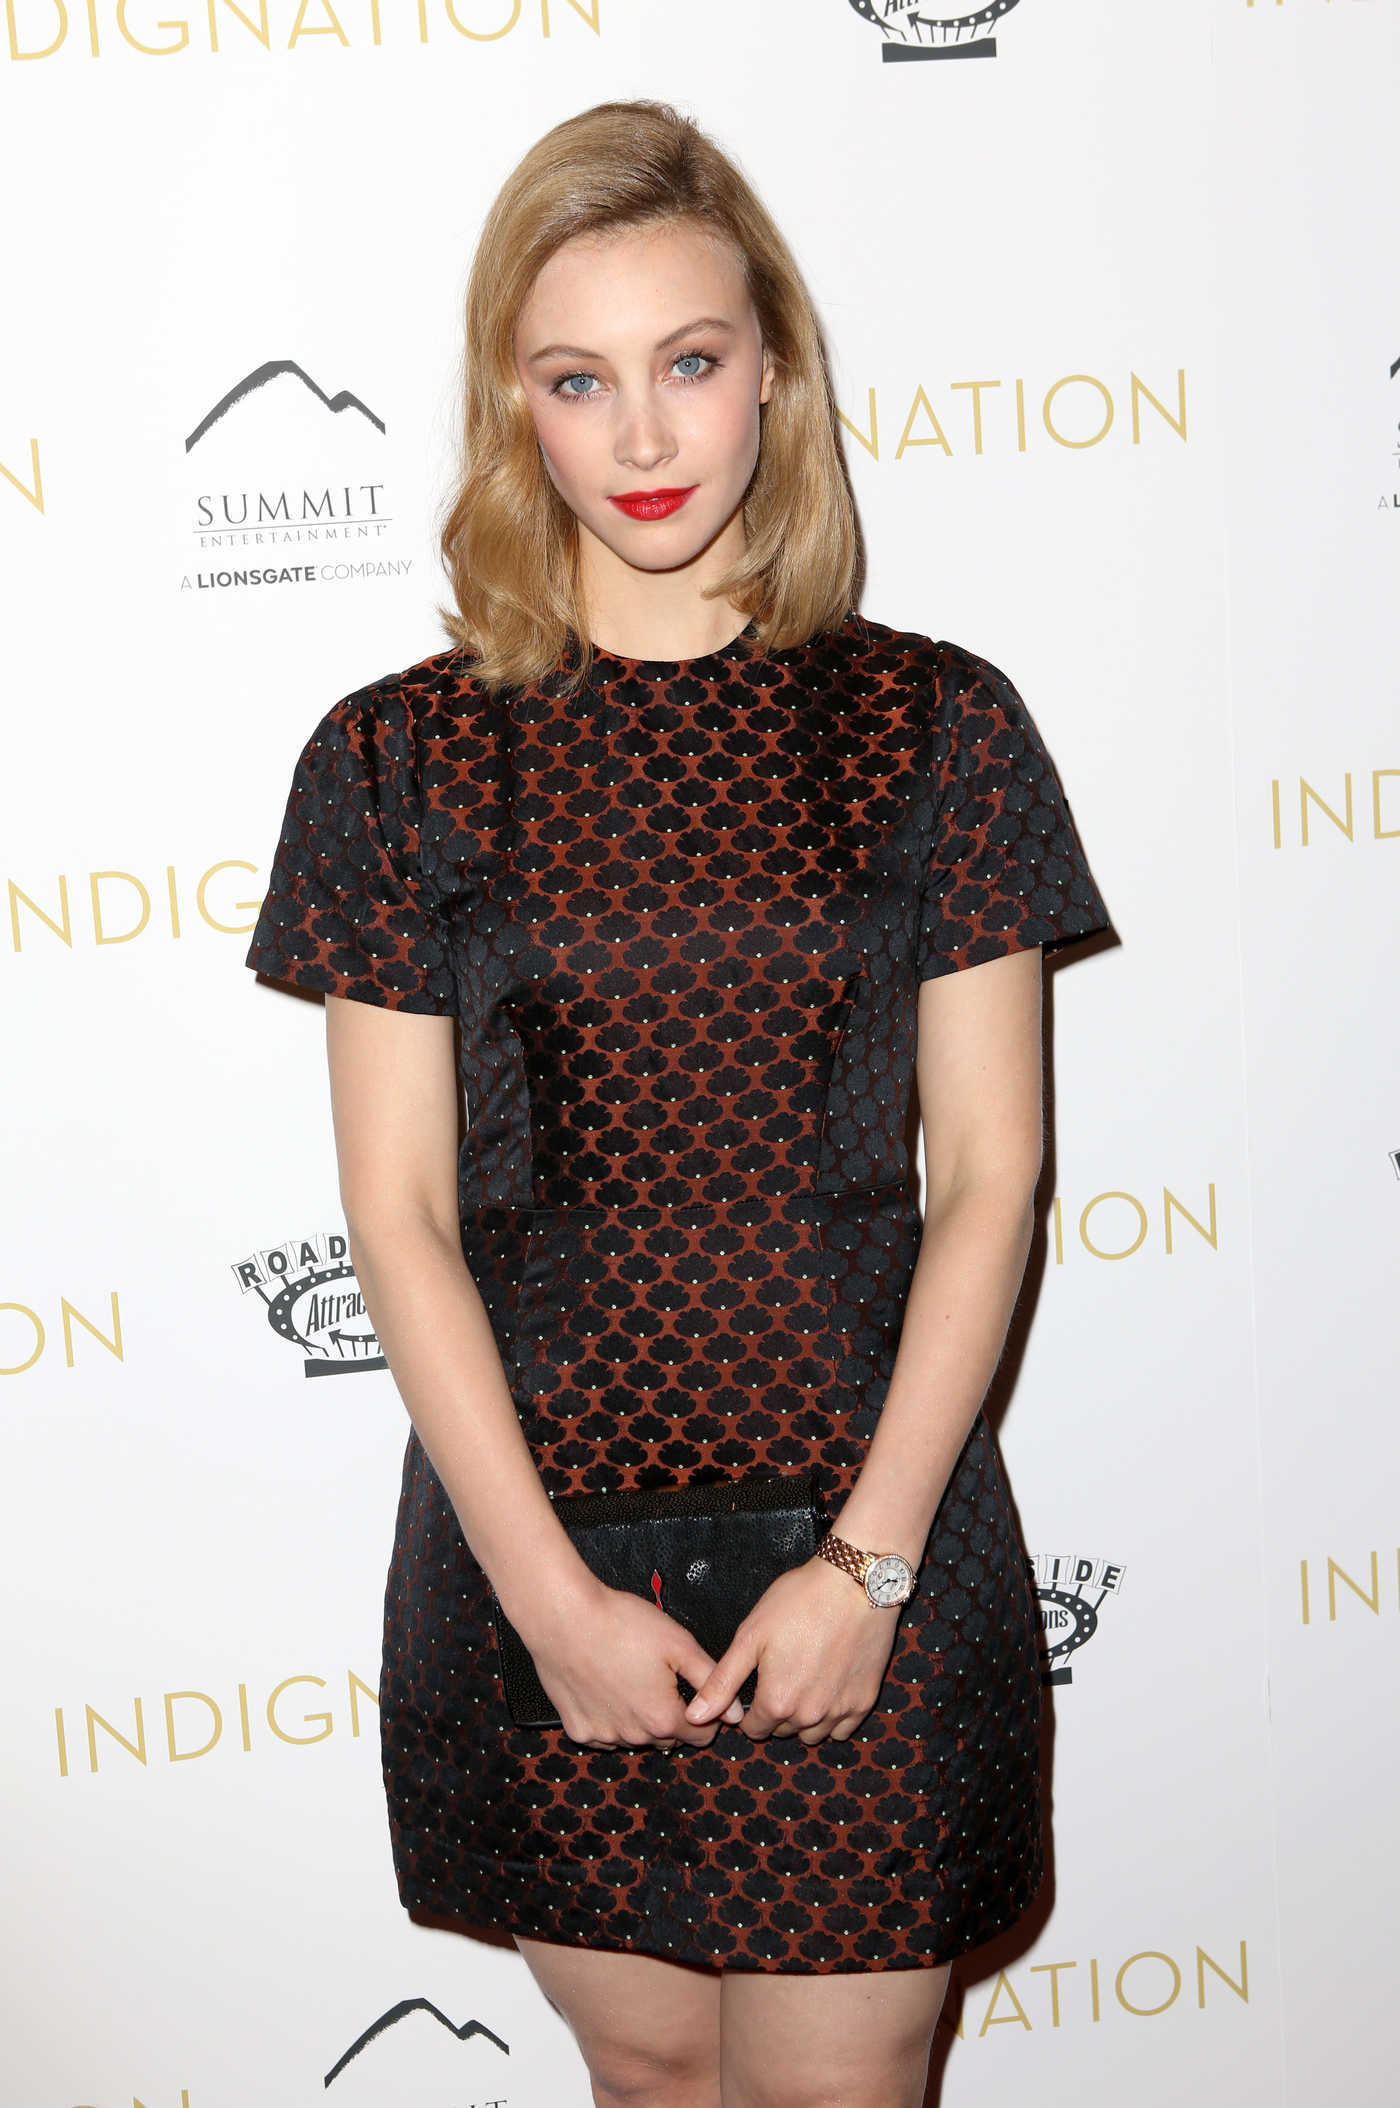 Sarah Gadon at The Indignation Premiere in NYC 07/25/2016